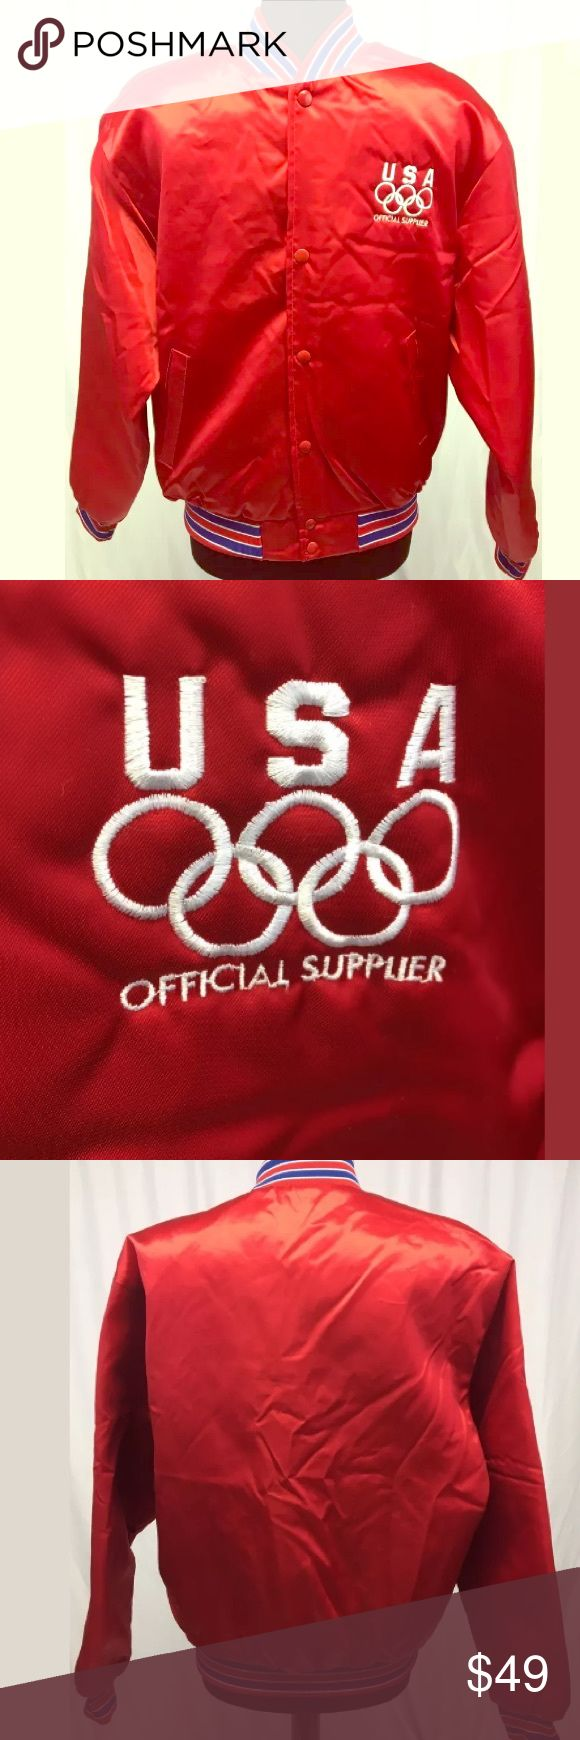 """Vintage Olympics Satin Jacket True Vintage Swingster USA Olympics Official Supplier Red Old School Style Satin Jacket, Men's Size Large; measures approx 23"""" pit to pit, 26-1/2"""" long; no flaws Swingster Jackets & Coats Bomber & Varsity"""